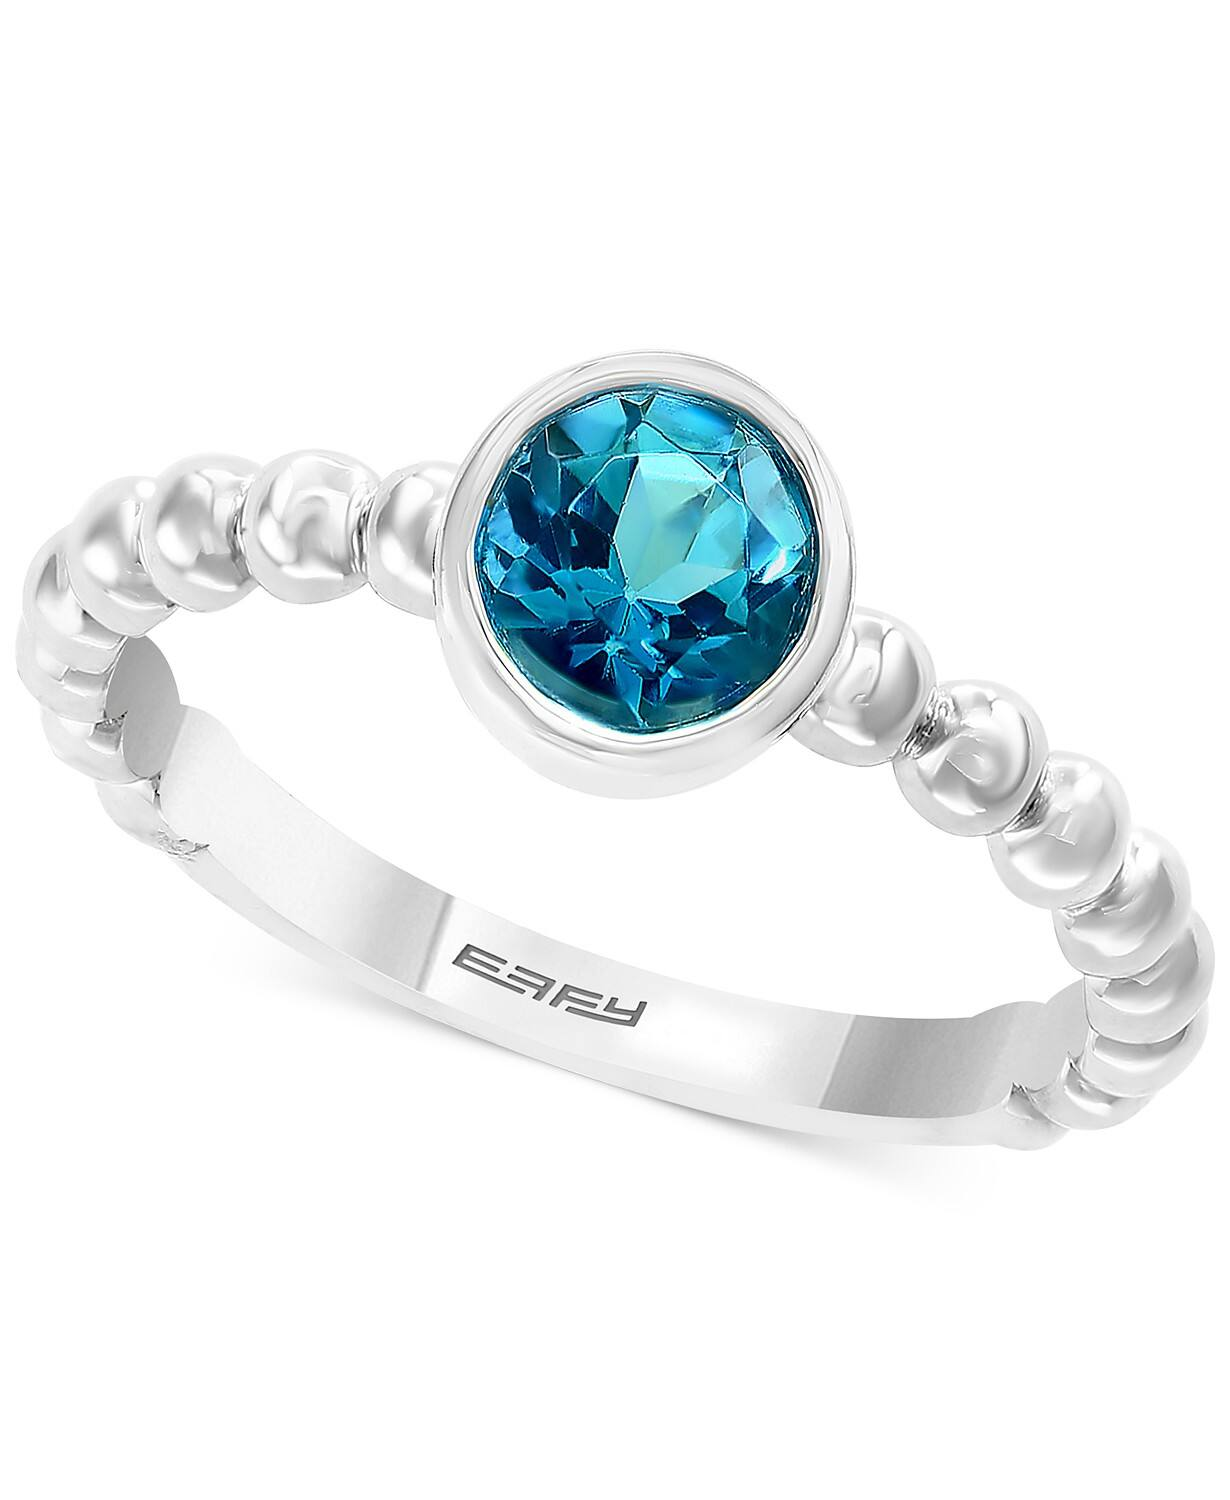 EFFY Sterling Silver Statement Ring (Blue Topaz or Citrine) $69 + Free Shipping